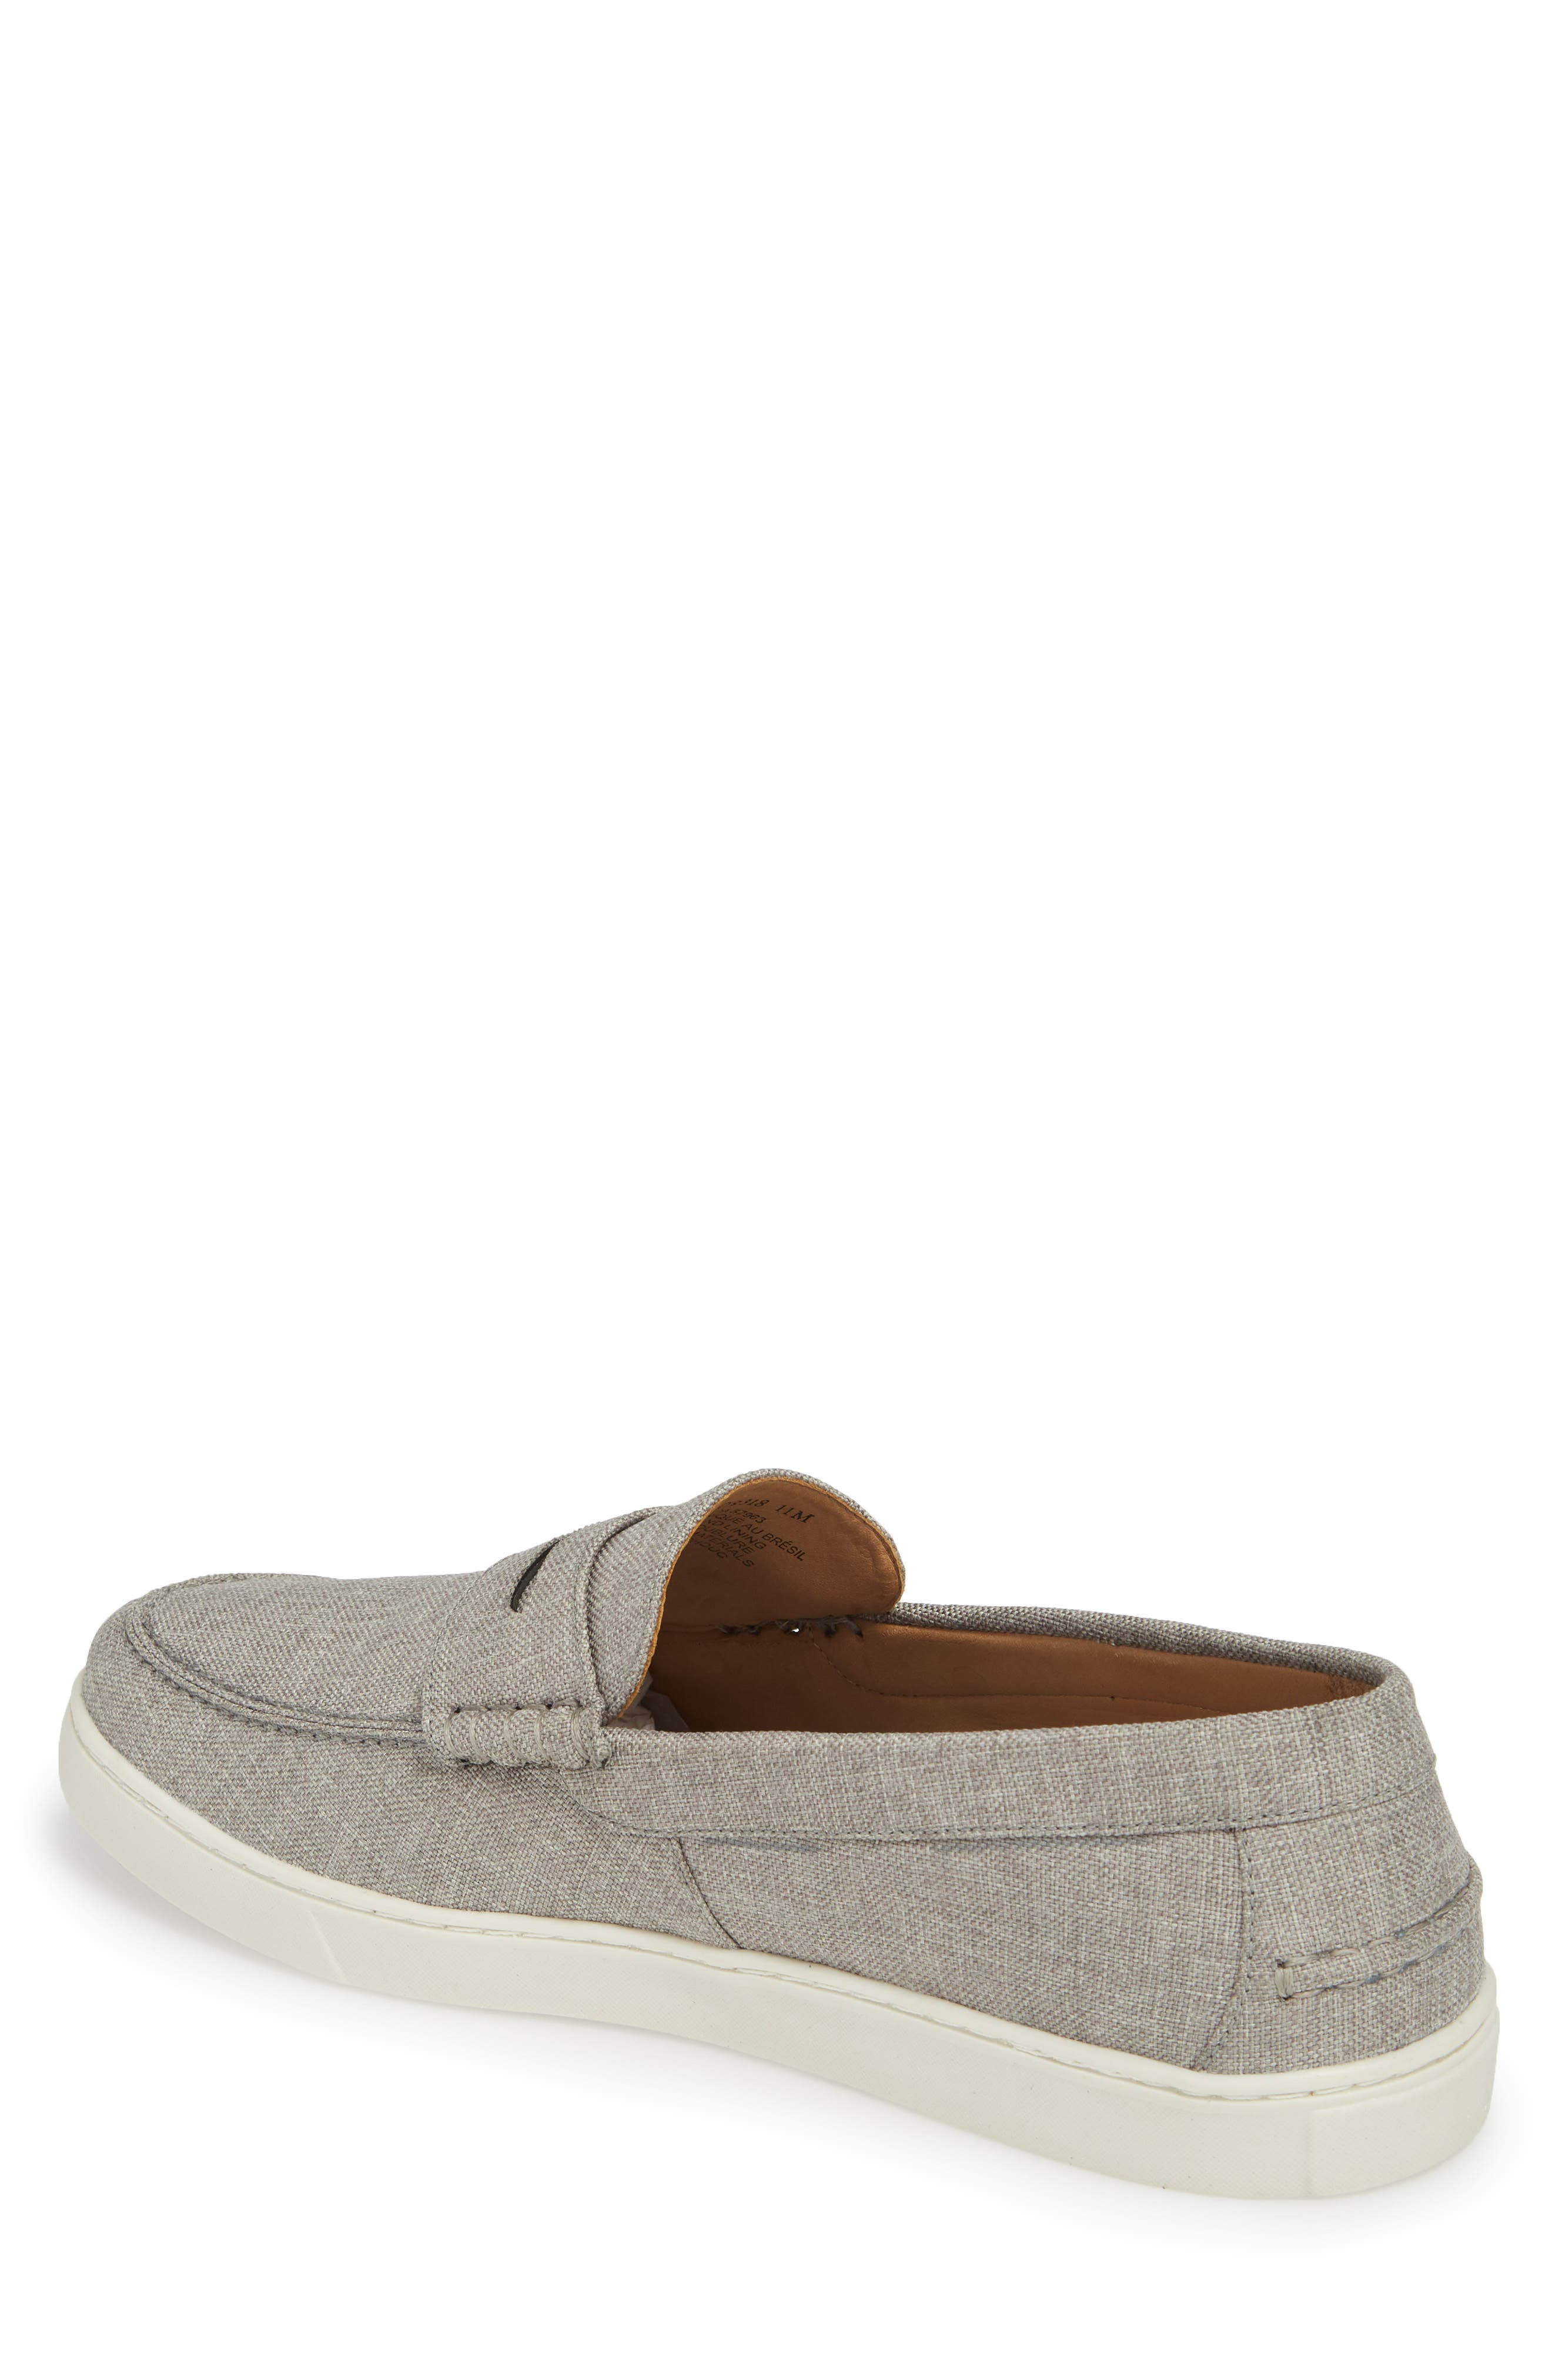 Chelan Penny Loafer,                             Alternate thumbnail 2, color,                             GREY CANVAS